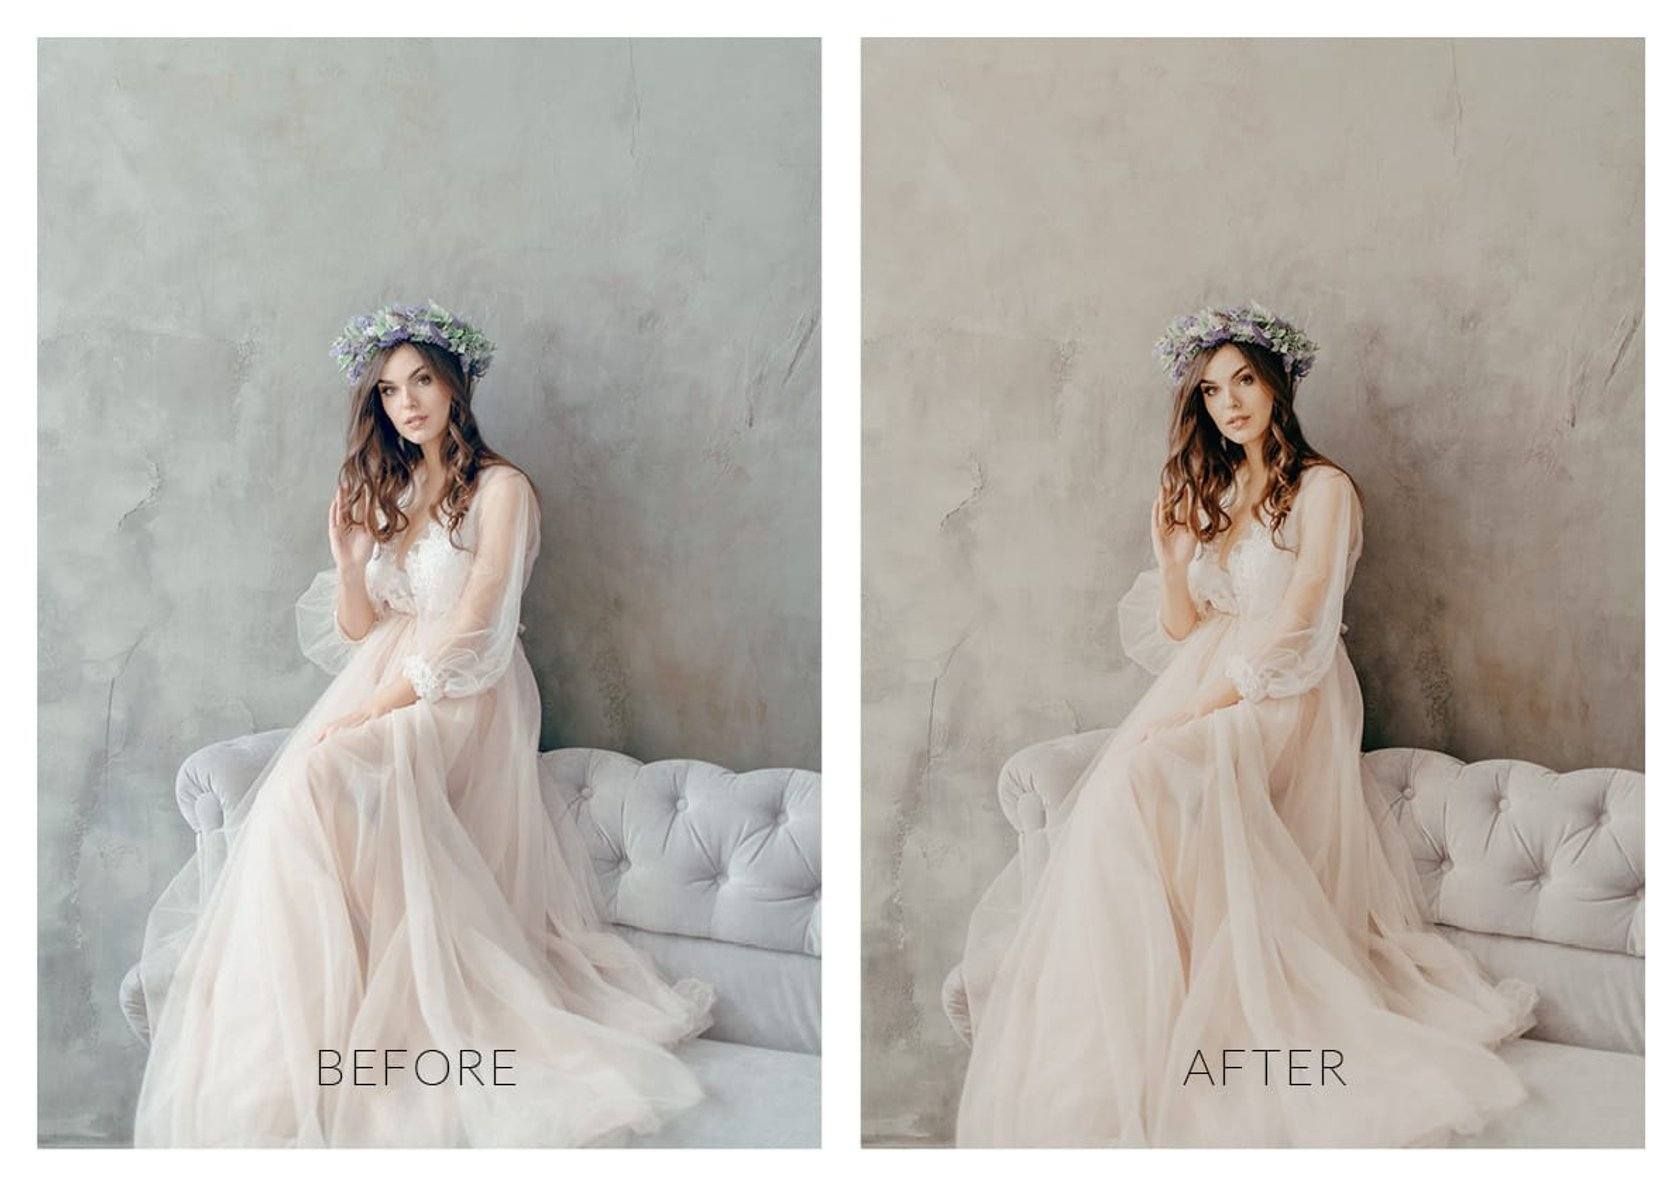 The 50 Best Lightroom Presets: Free and Paid | Skylum Blog